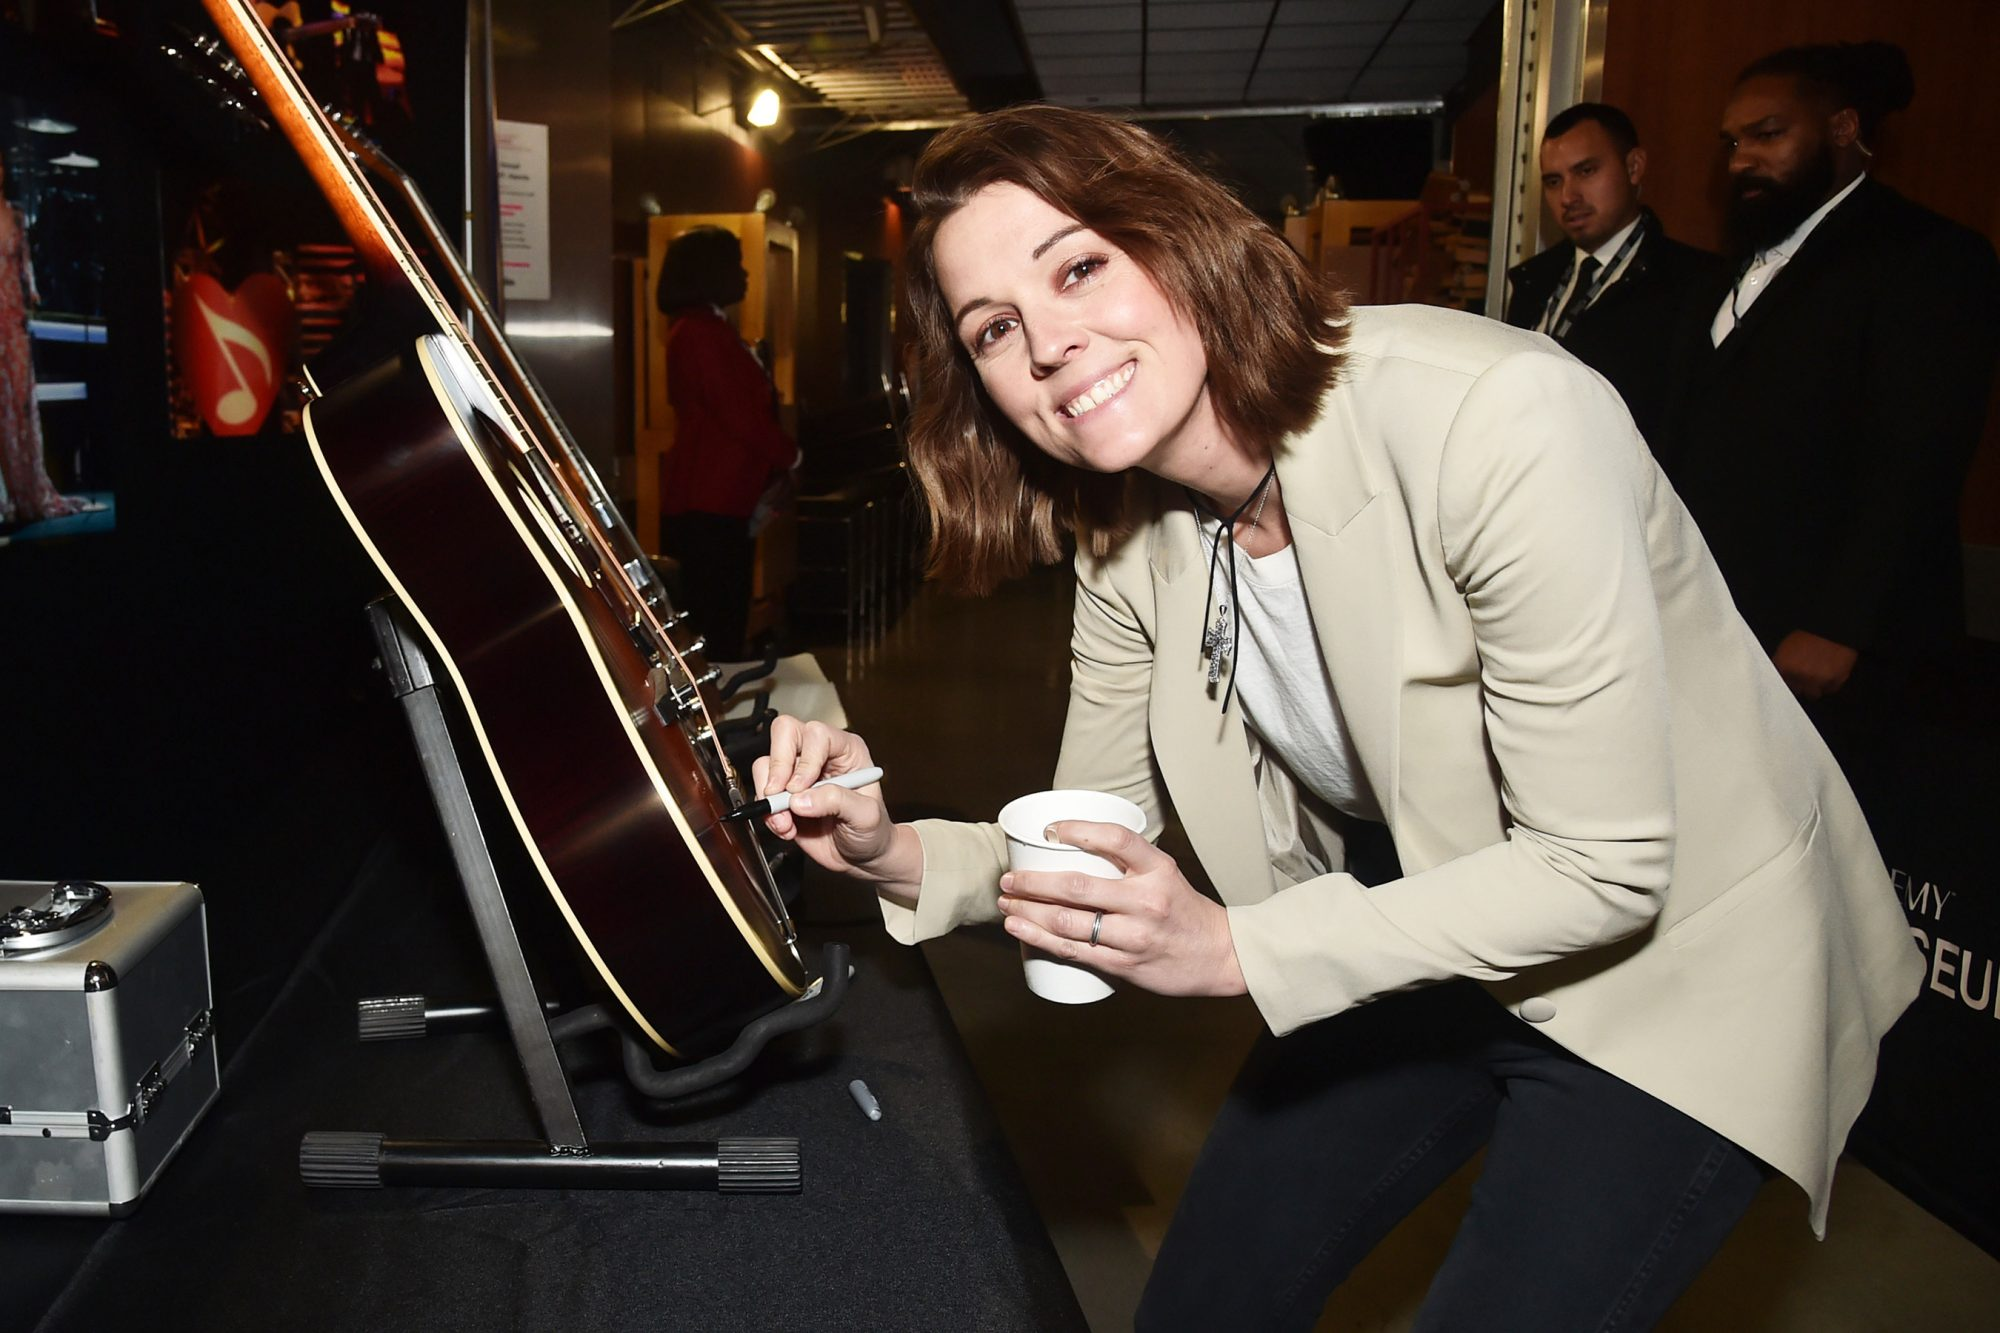 61st Annual GRAMMY Awards - GRAMMY Charities Signings - Day 1